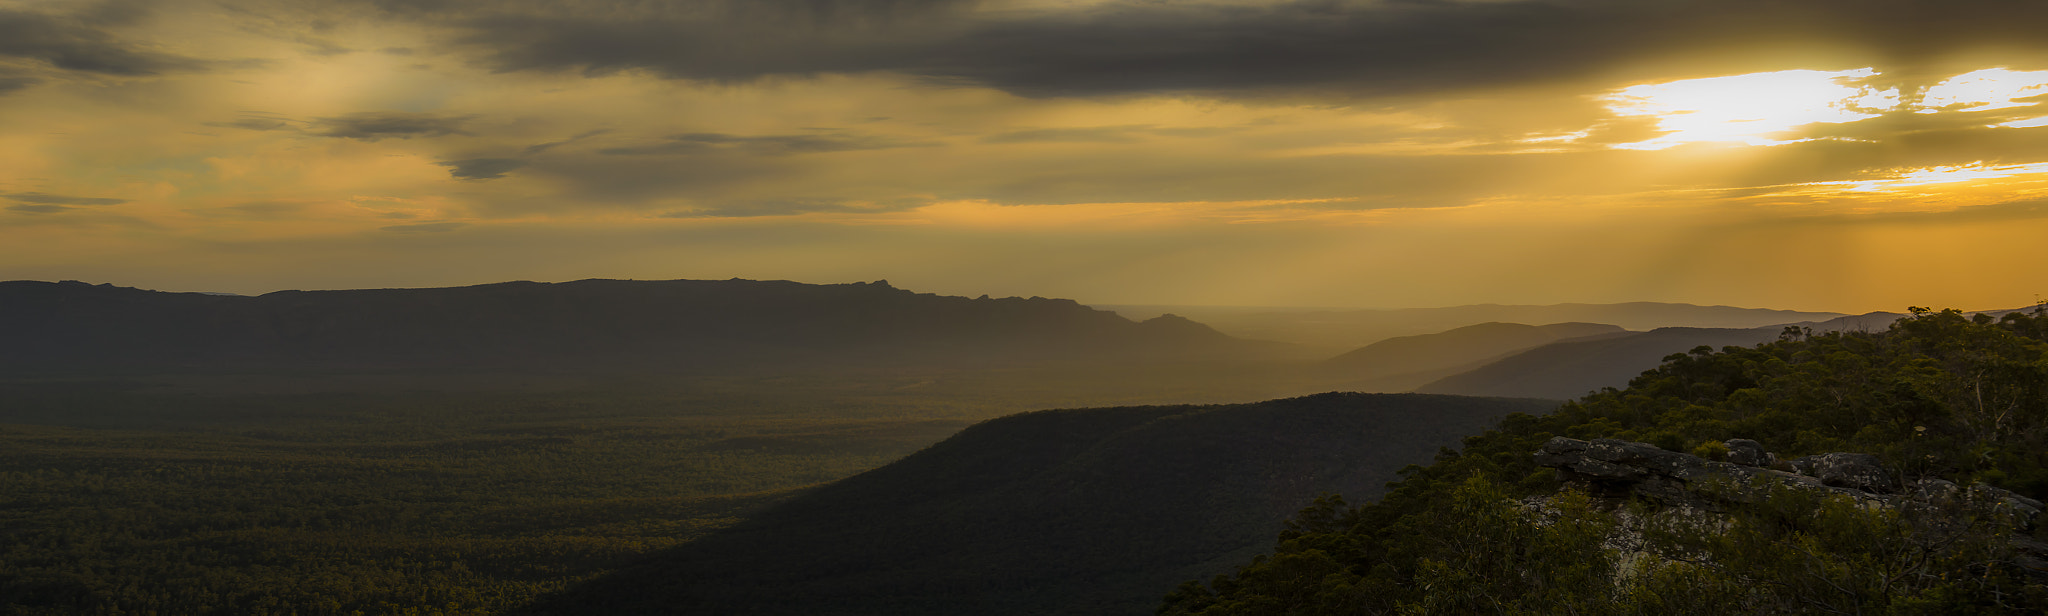 Photograph Grampians by Martijn Barendregt on 500px